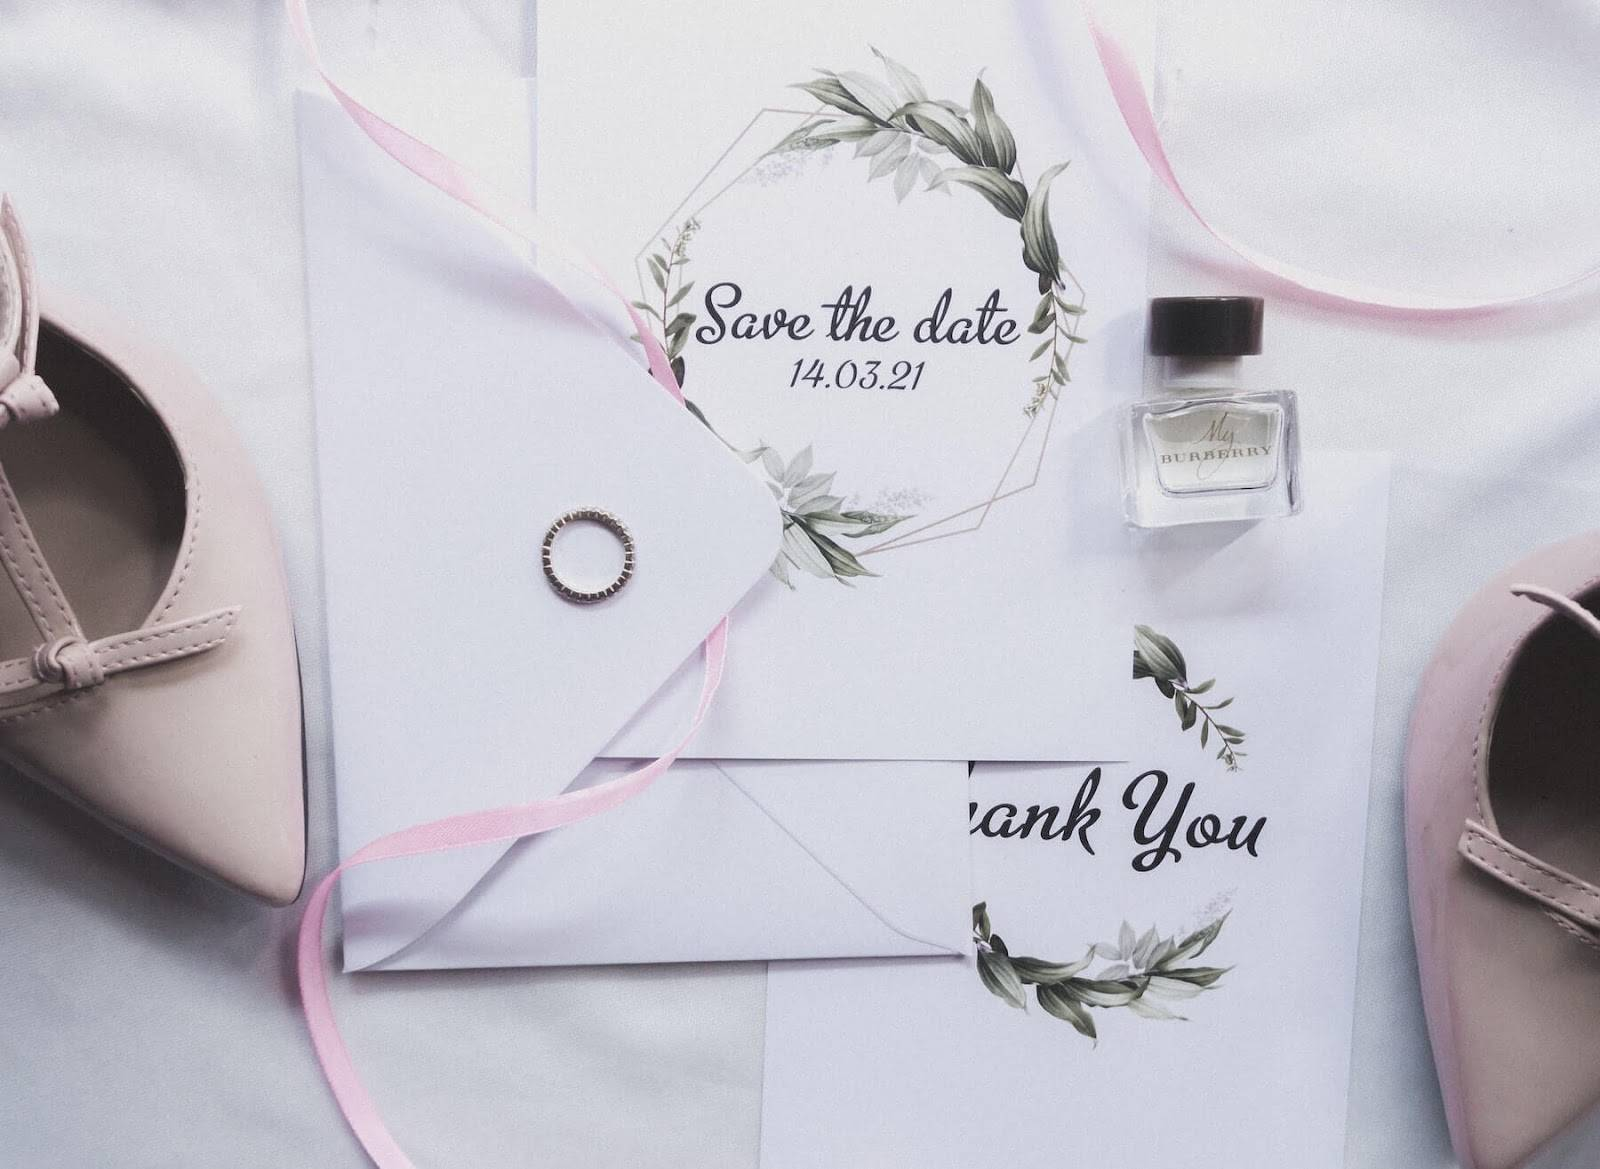 8 Small Wedding Details Your Guests Will Love